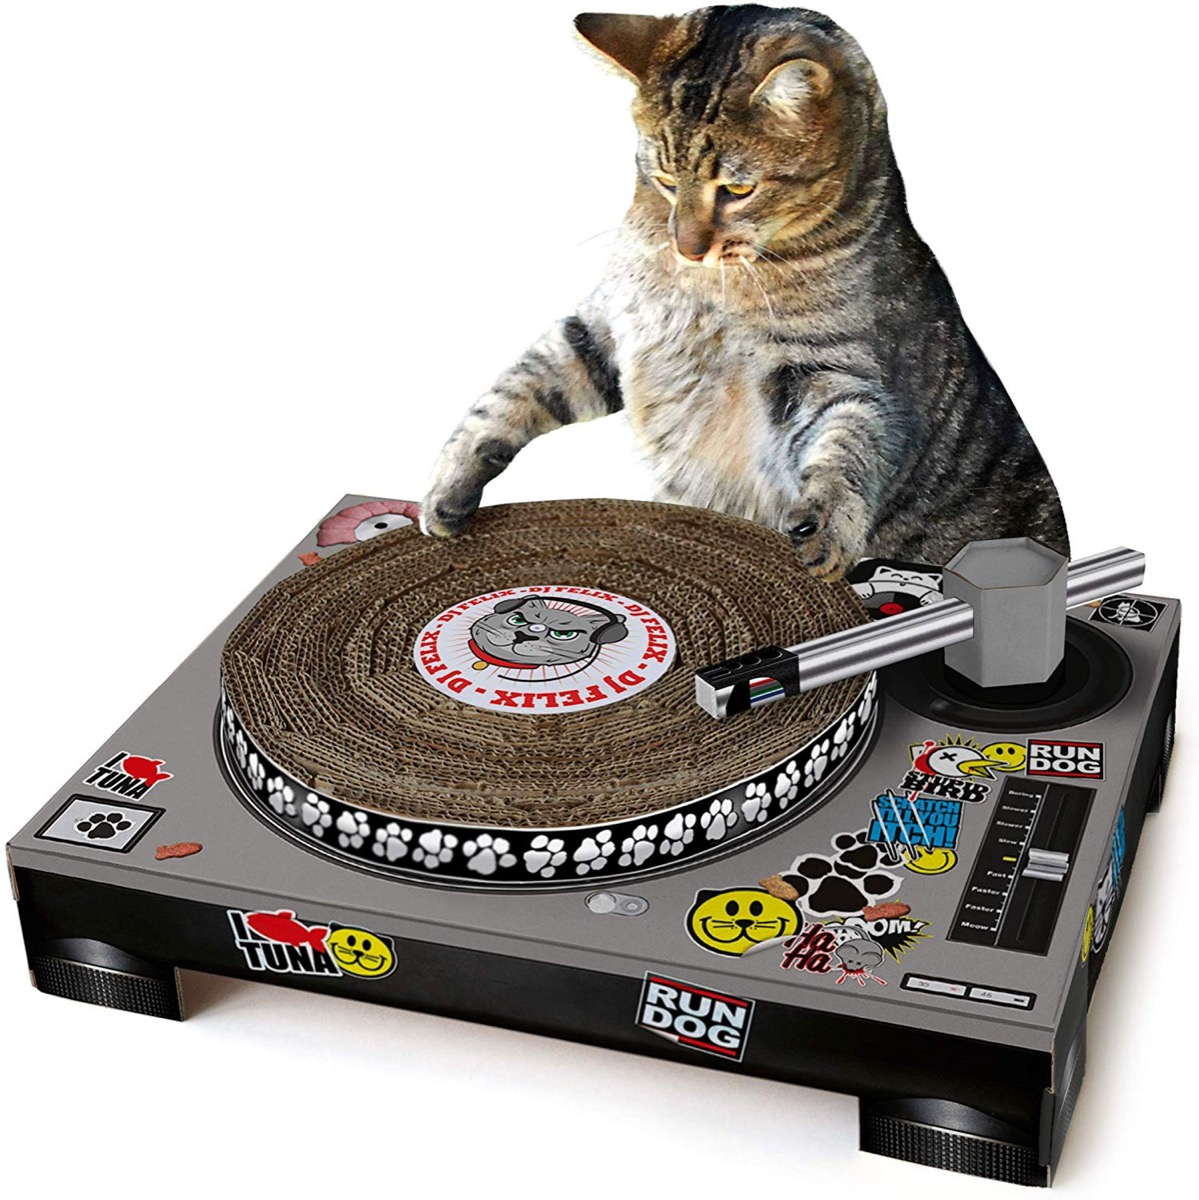 Cat using turntable scratch pad, pet gifts from Amazon